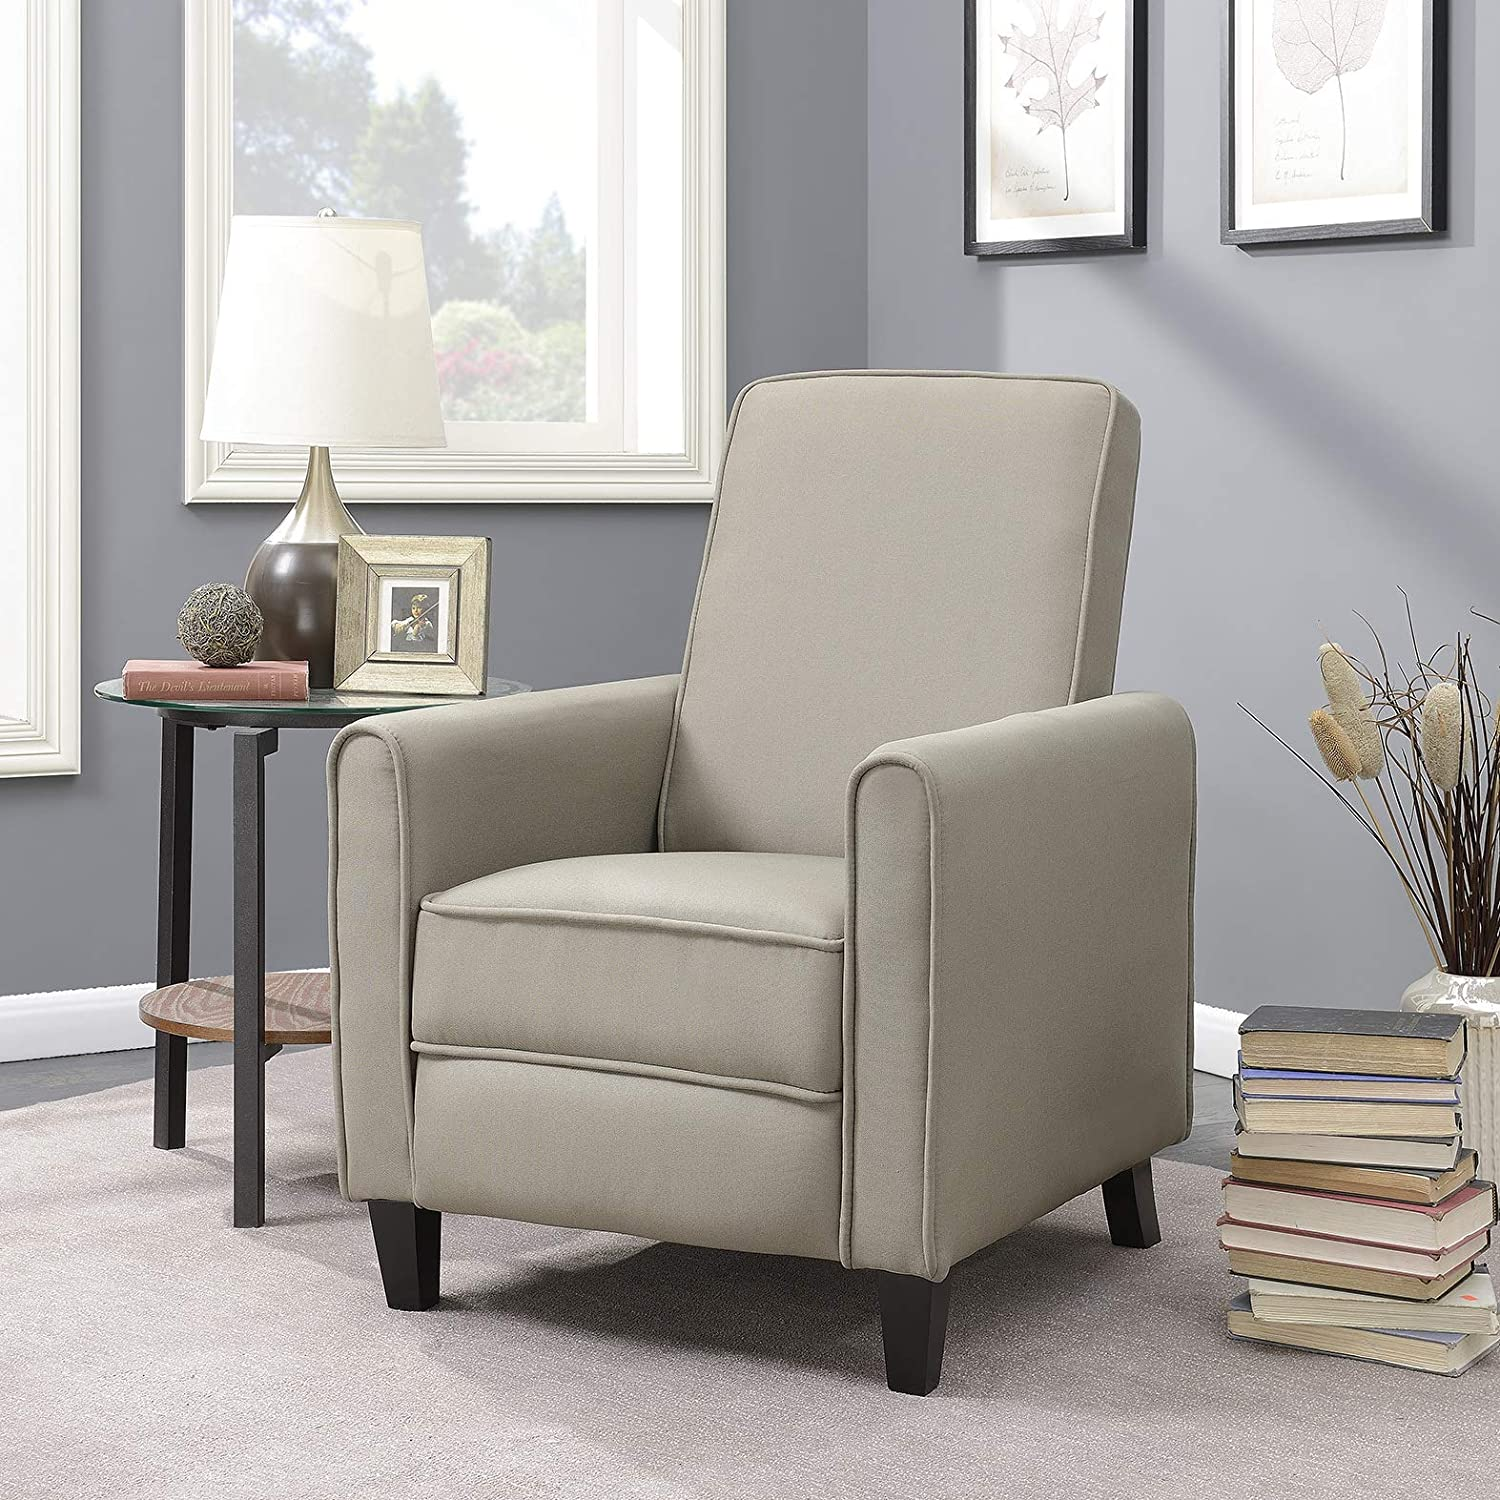 Amazon com belleze modern recliner club chair accent living room linen w footrest taupe kitchen dining